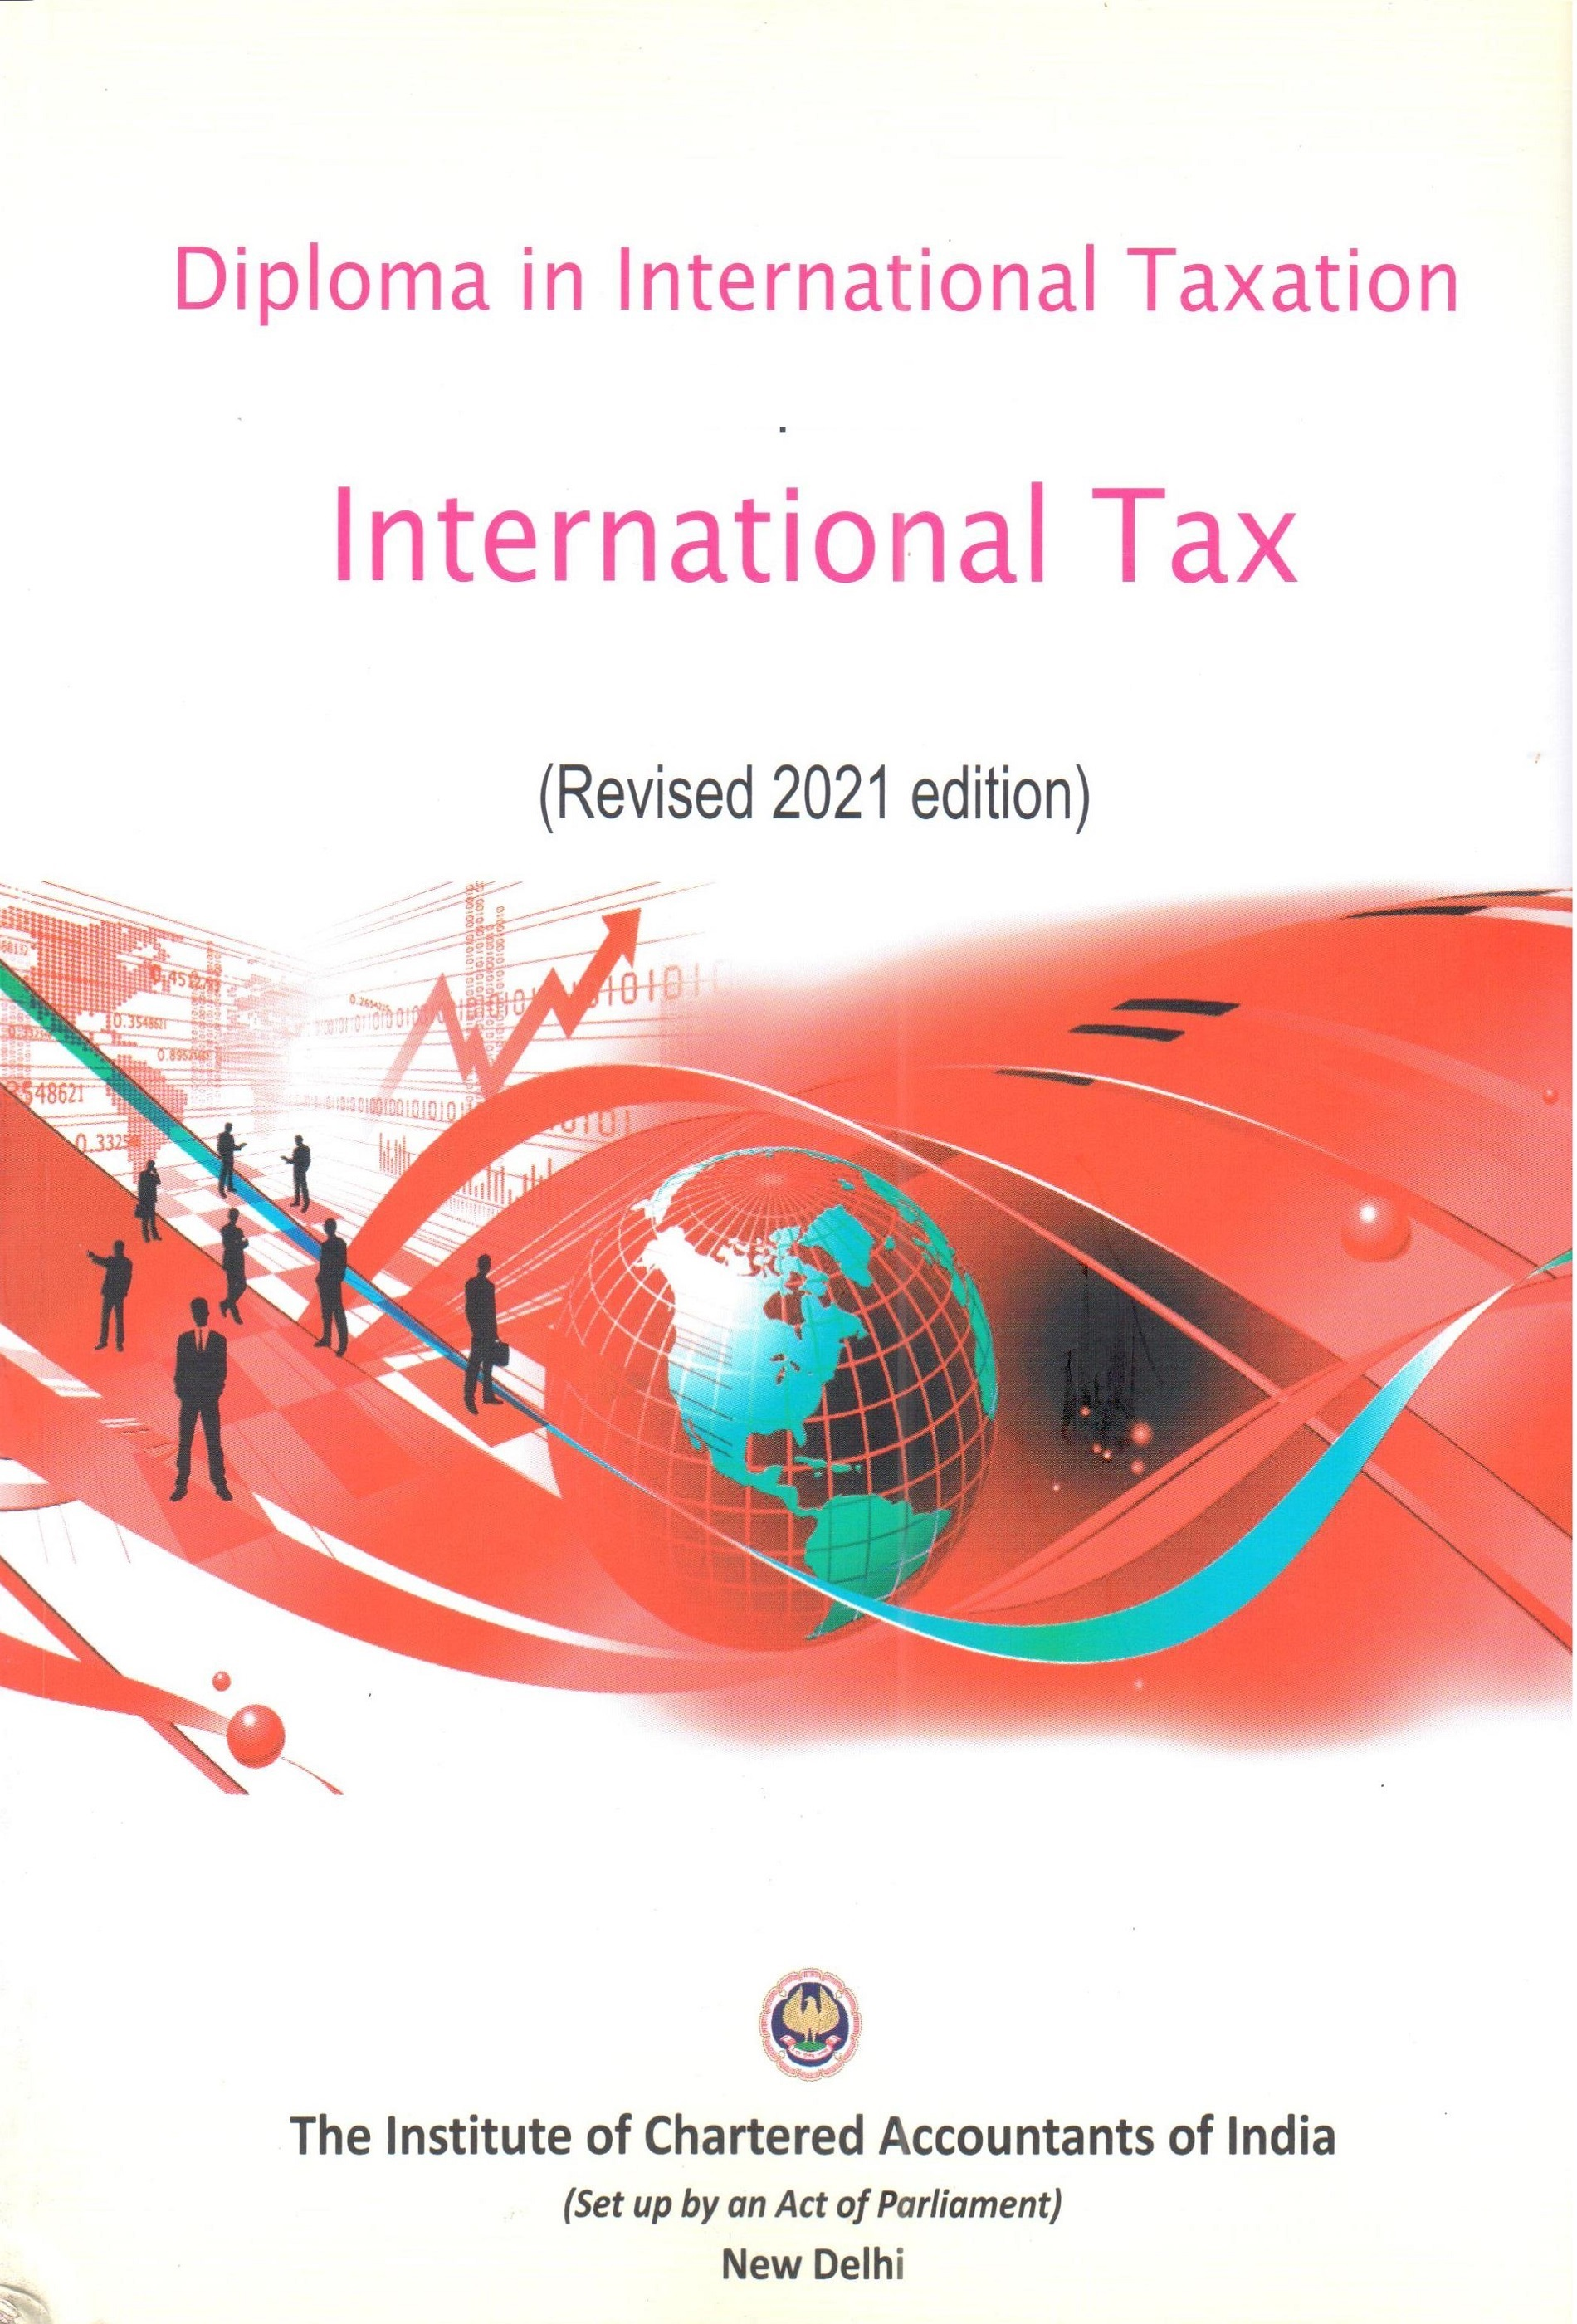 Diploma in International Taxation Paper - 1 & 2 International Tax: Transfer Pricing and Practice (Part I&II) (Revised 2021 edition)